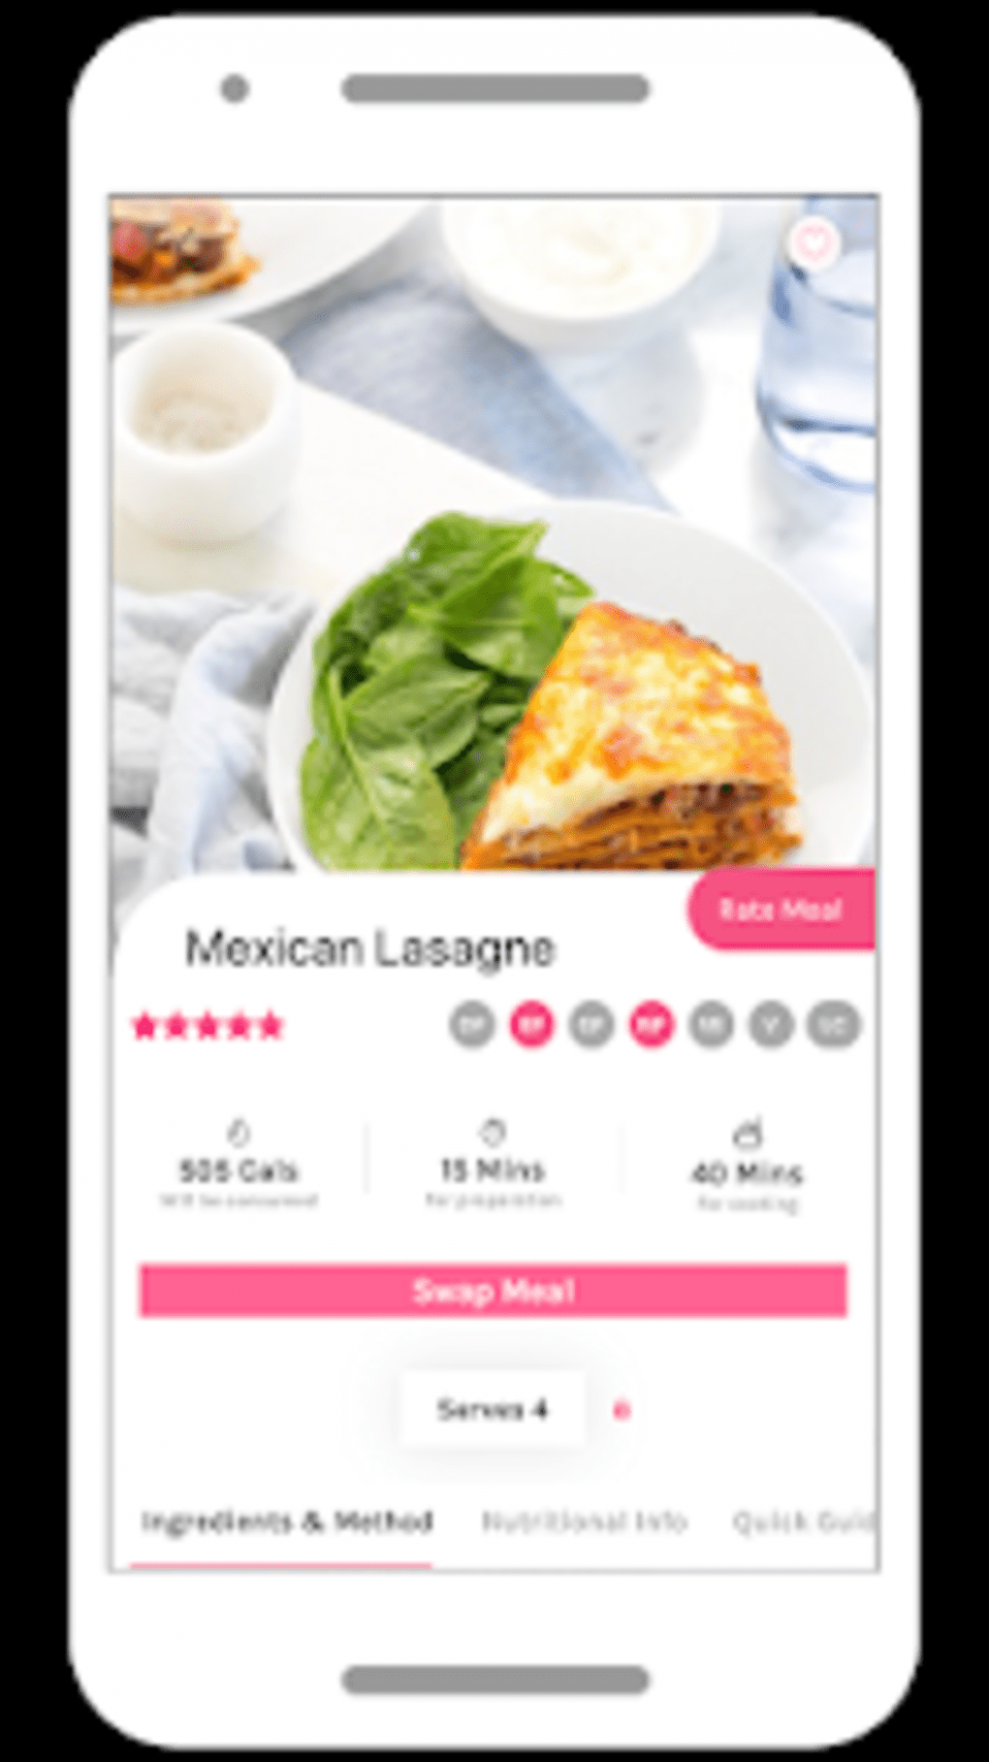 The Healthy Mummy For Android - Download - Healthy Mummy Recipes